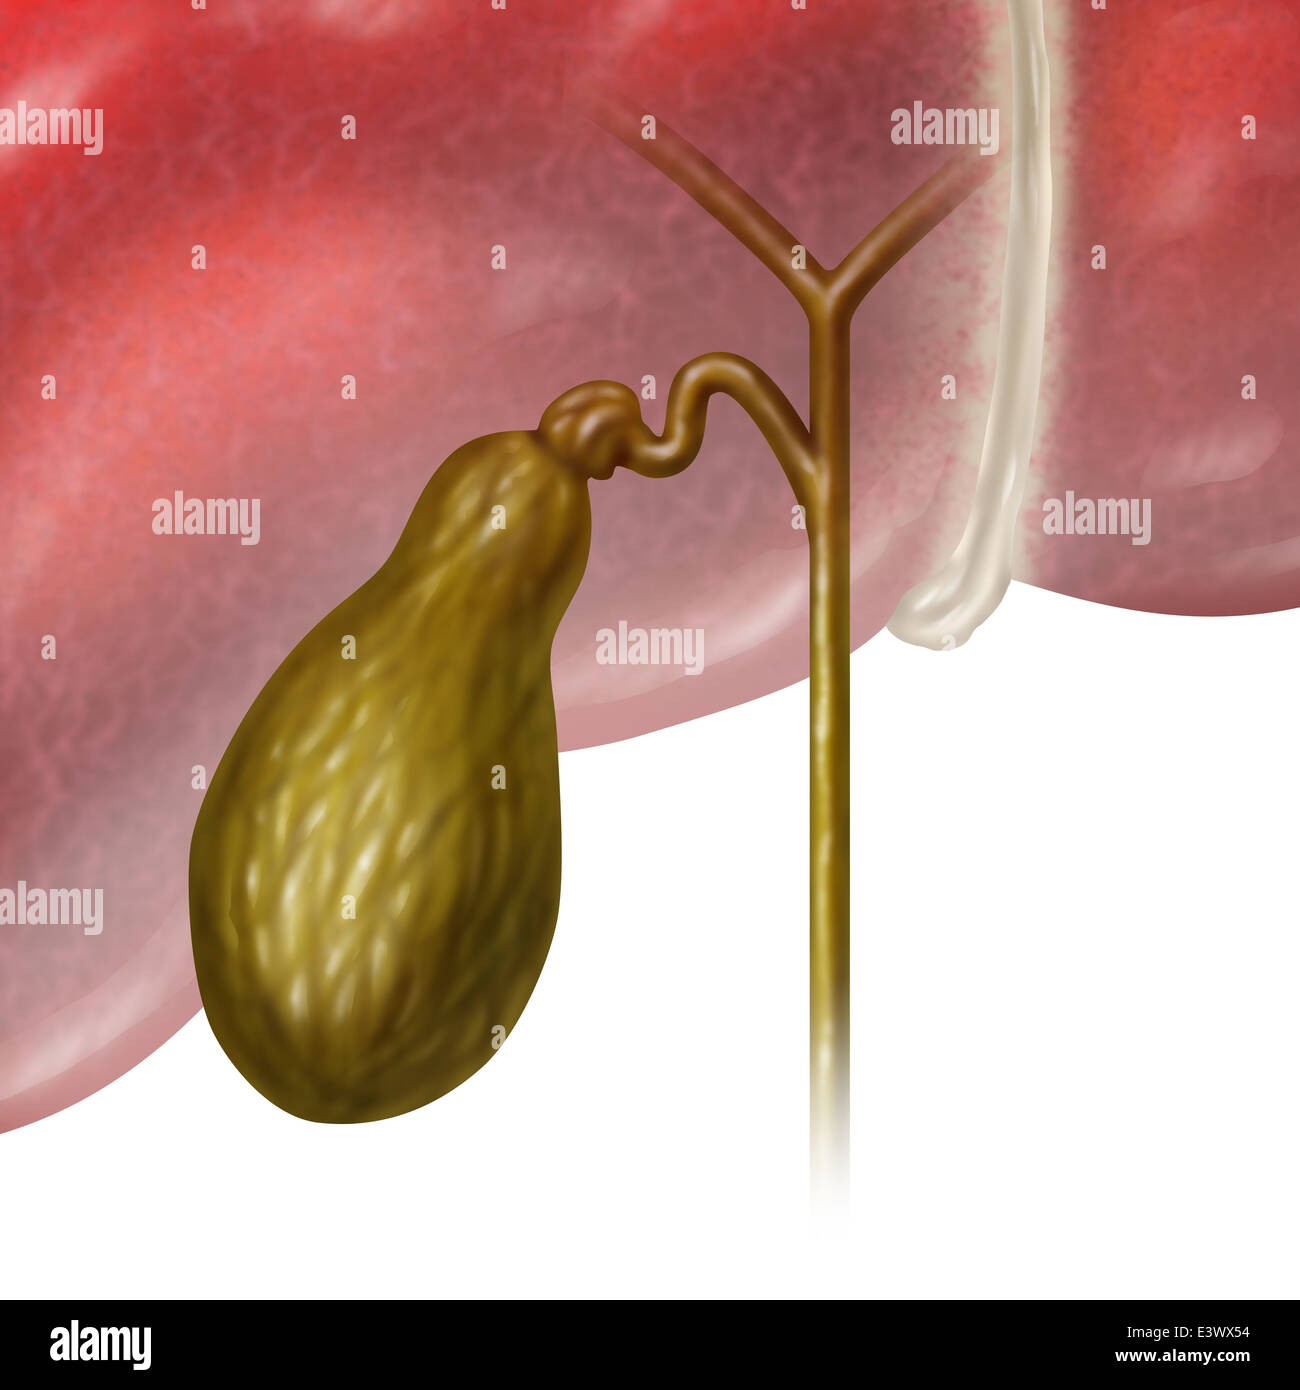 internal organs gallbladder choice image